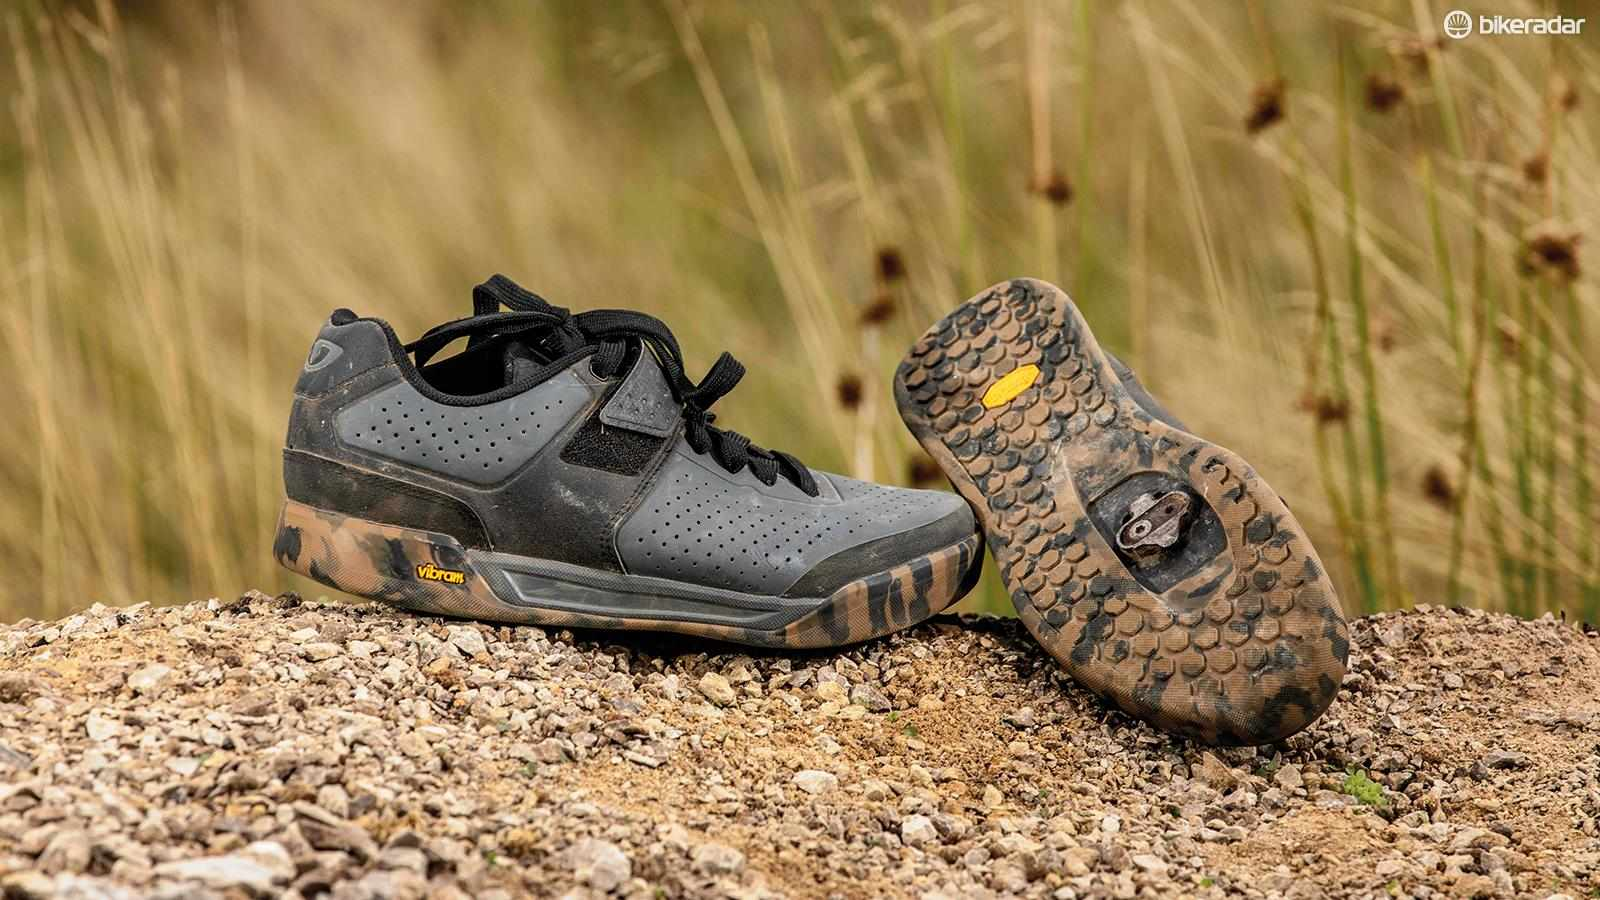 The wide camo-print sole and toe bumper fend off knocks nicely